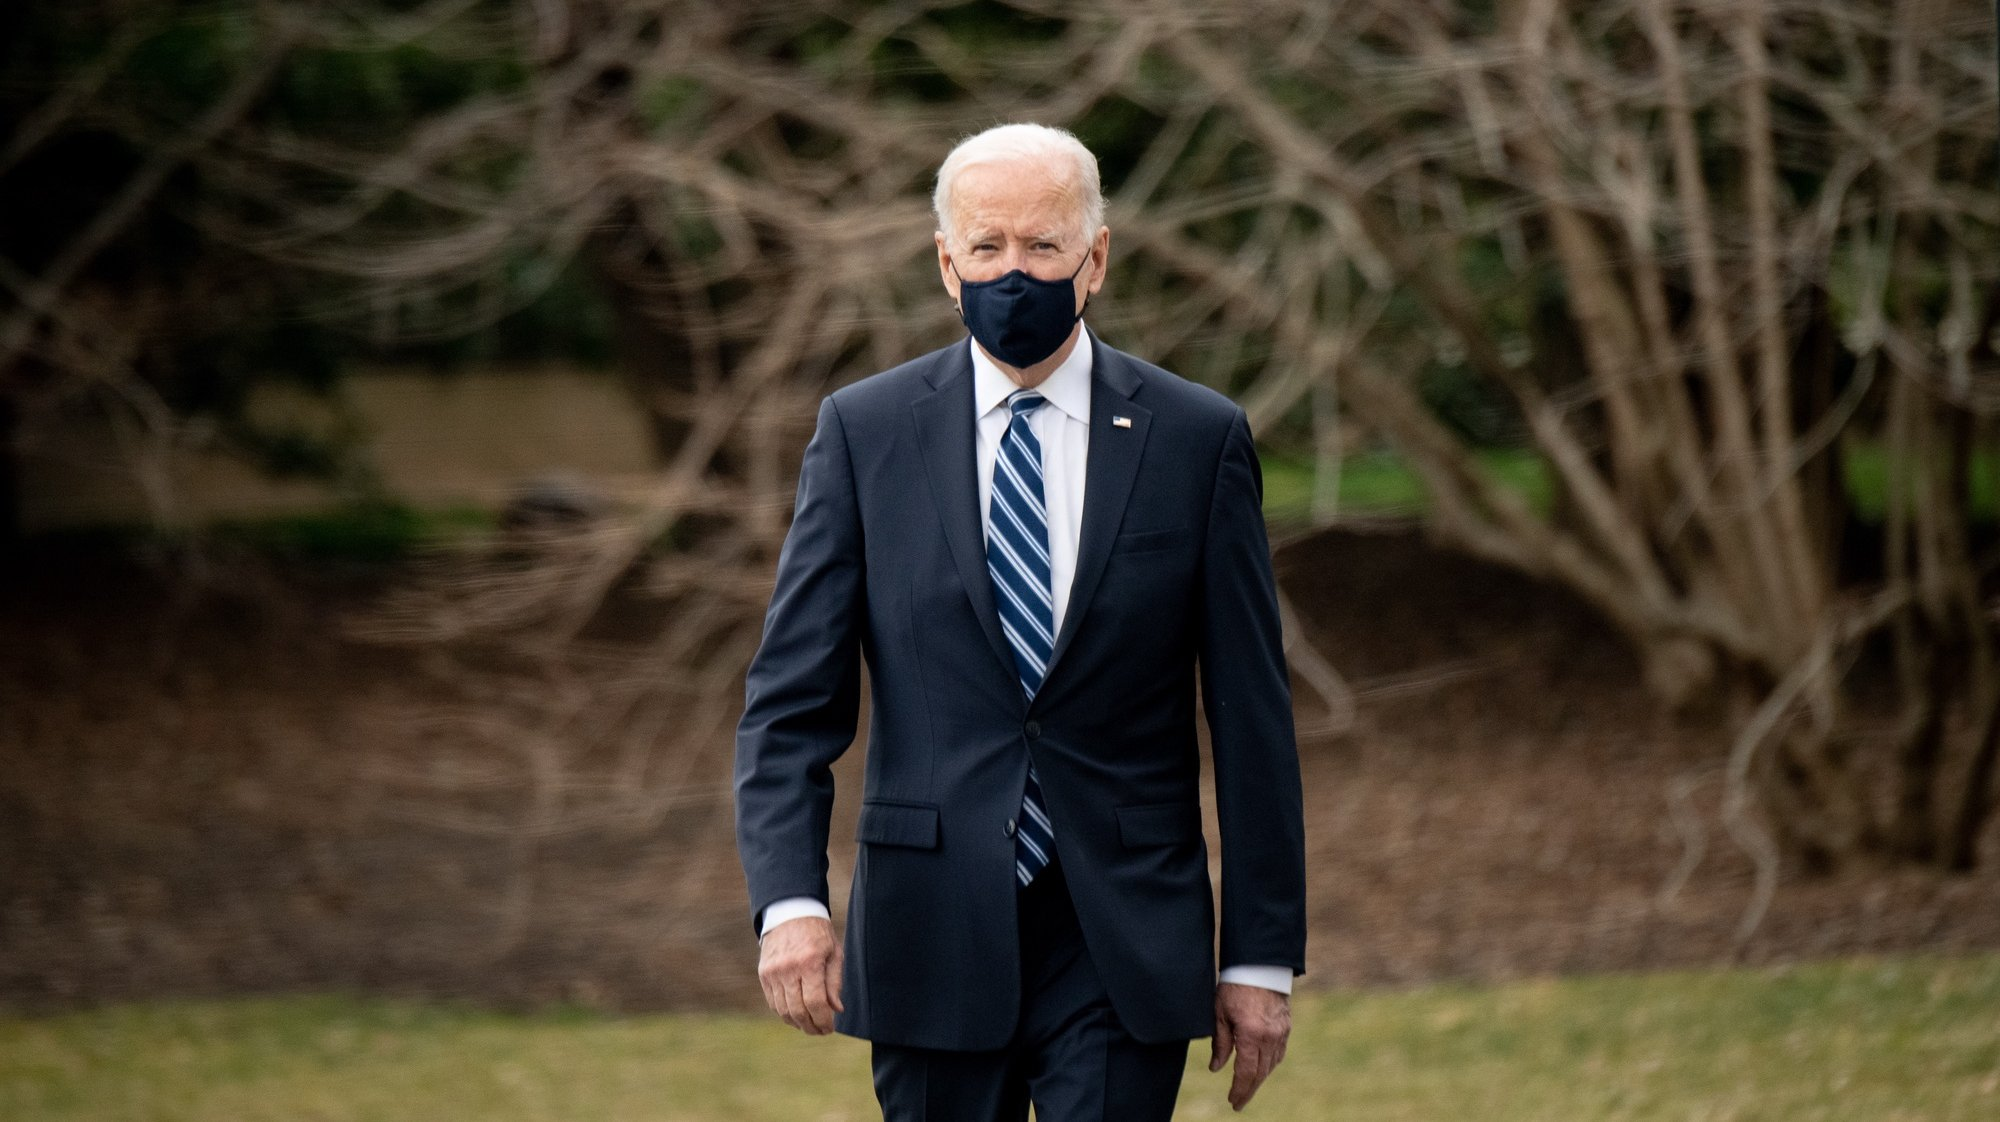 epa09078505 US President Joe Biden walks on the South Lawn of the White House before boarding Marine One in Washington, DC, USA, 16 March 2021. Biden, traveling to Pennsylvania, is fanning out across the country along with the Vice President and their spouses to highlight Americans receiving stimulus checks and coronavirus vaccines, as well as businesses that have been able to stay afloat with government loans.  EPA/ERIN SCOTT / POOL